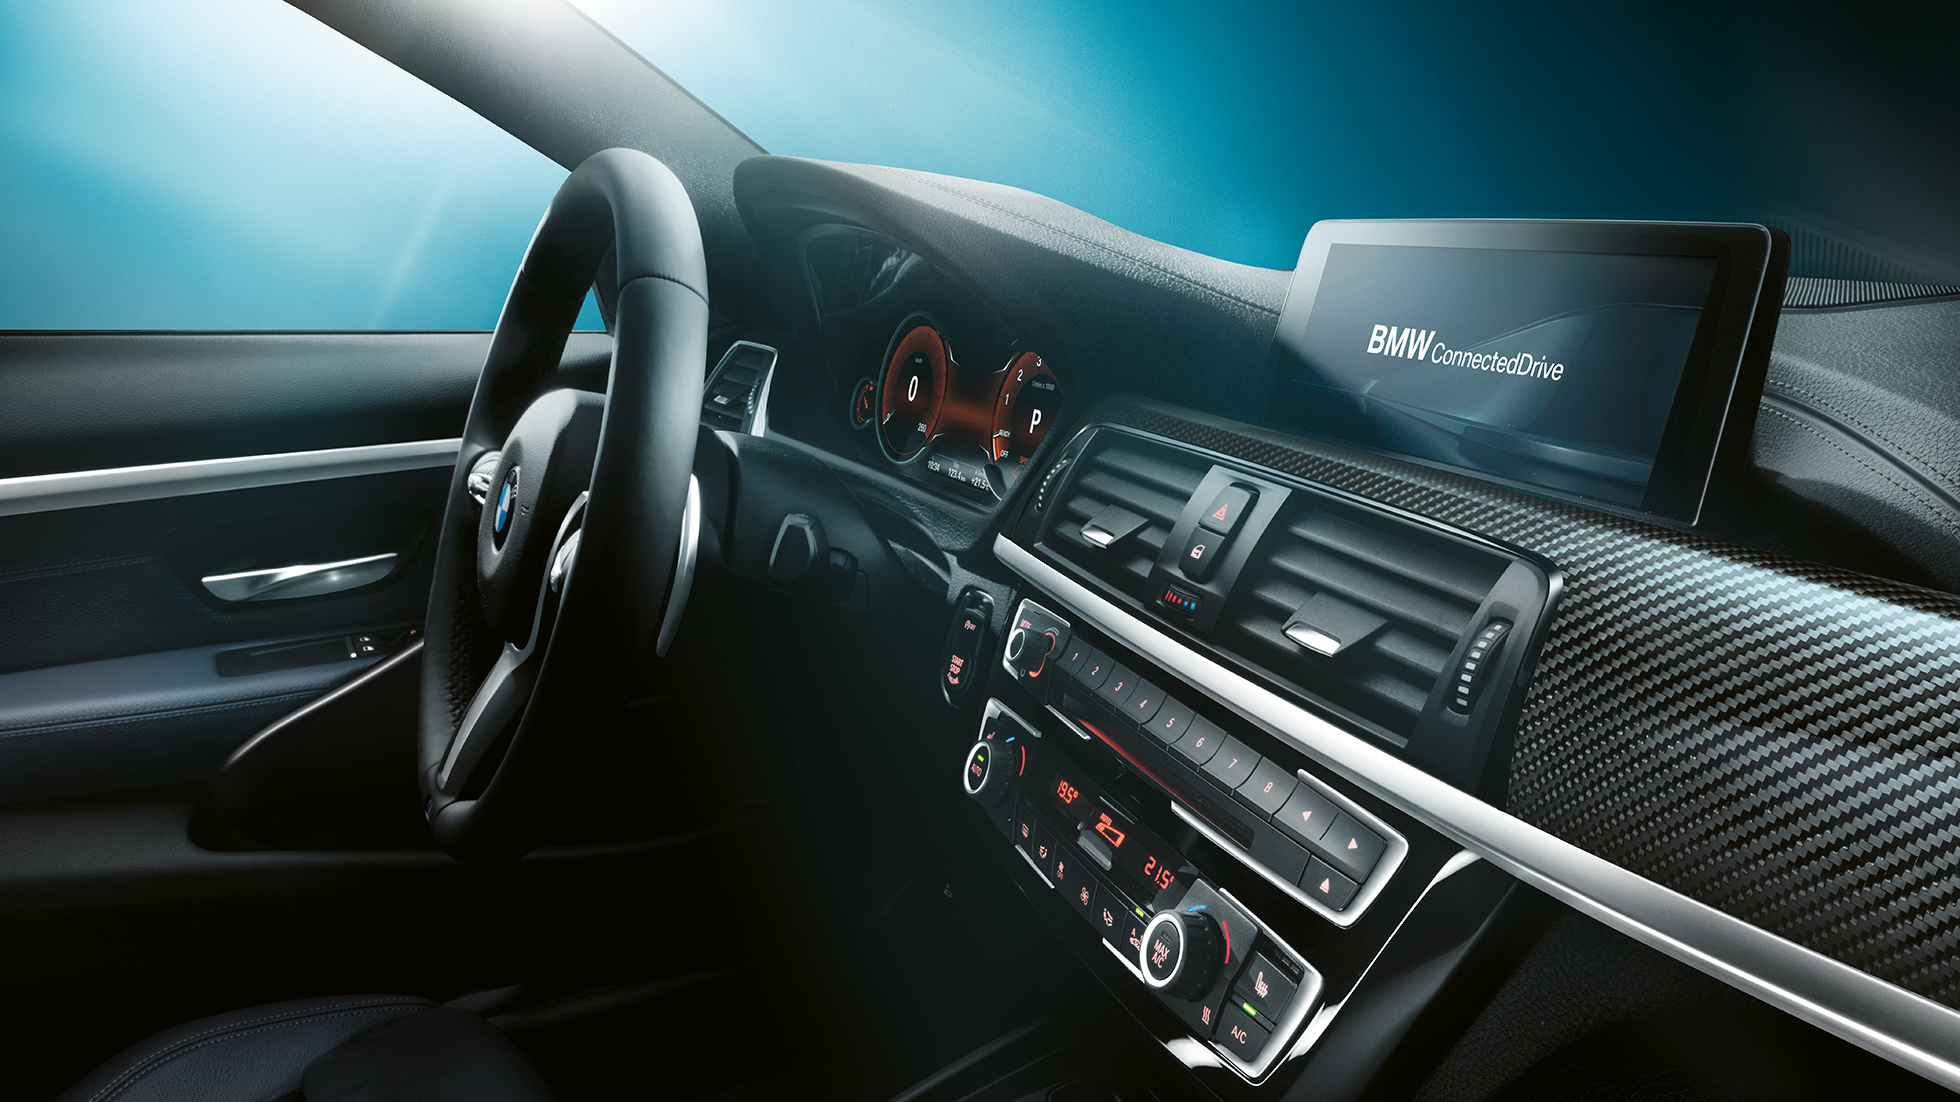 bmw-4-series-coupe-inspire-mg-exterior-interior-design-desktop-05